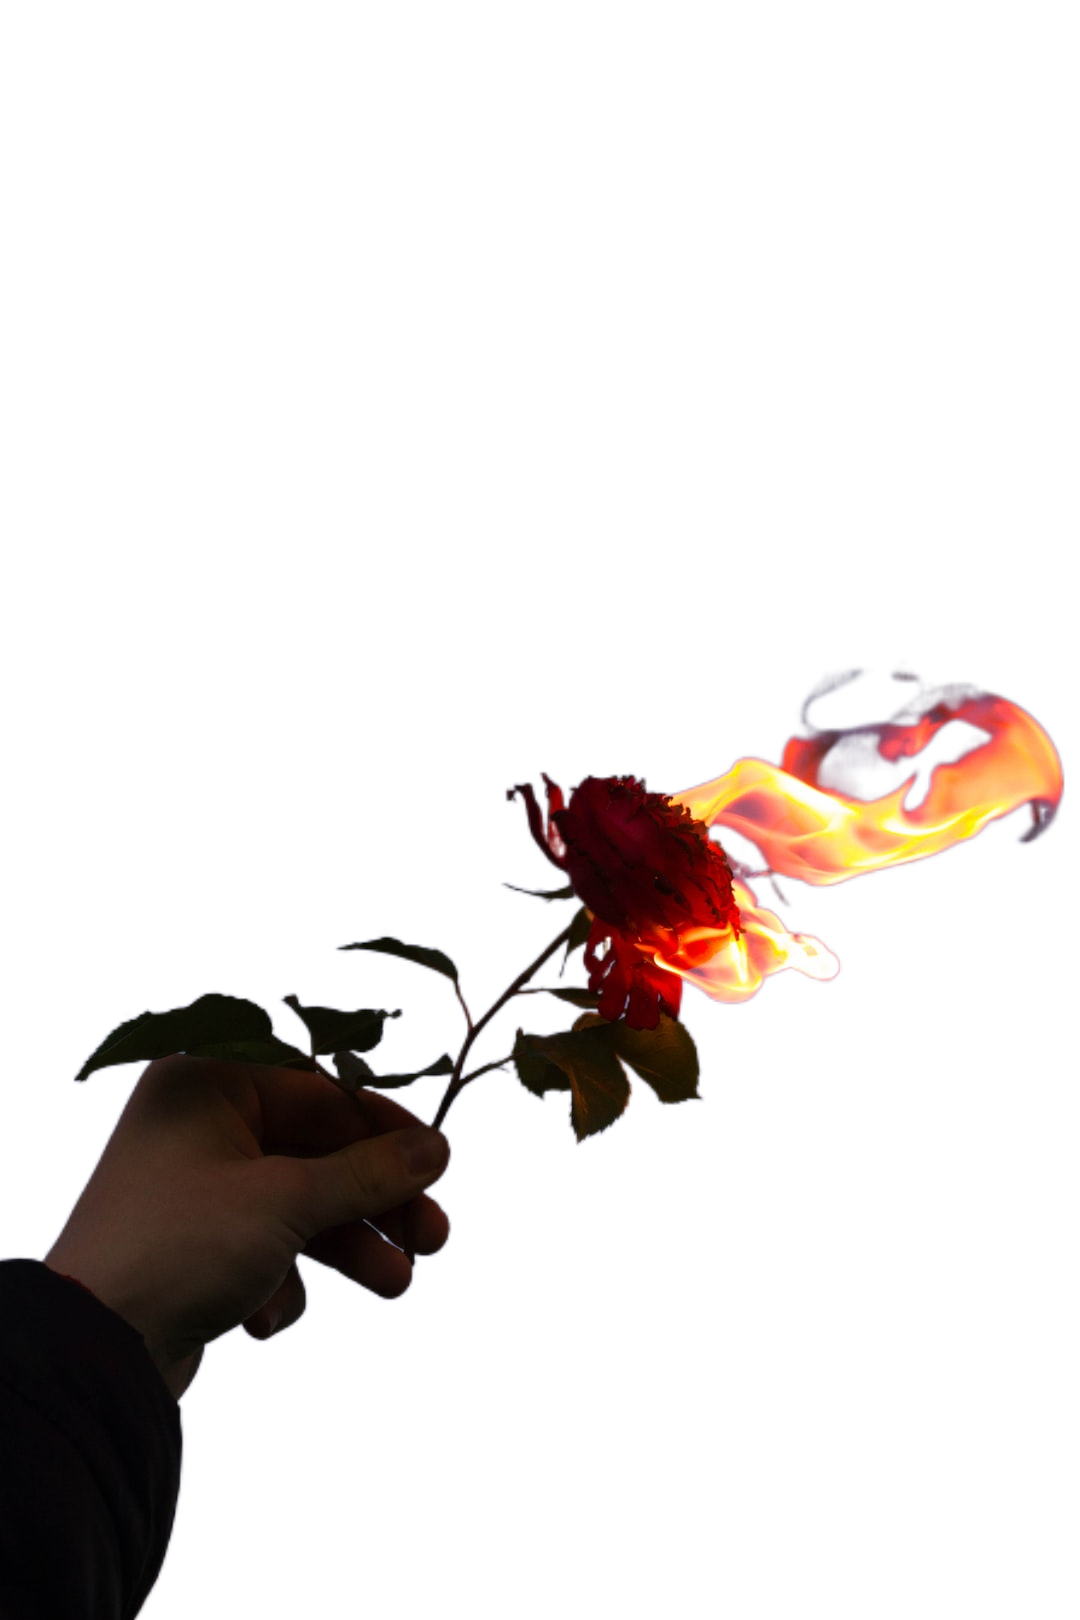 person holding red flower during sunset